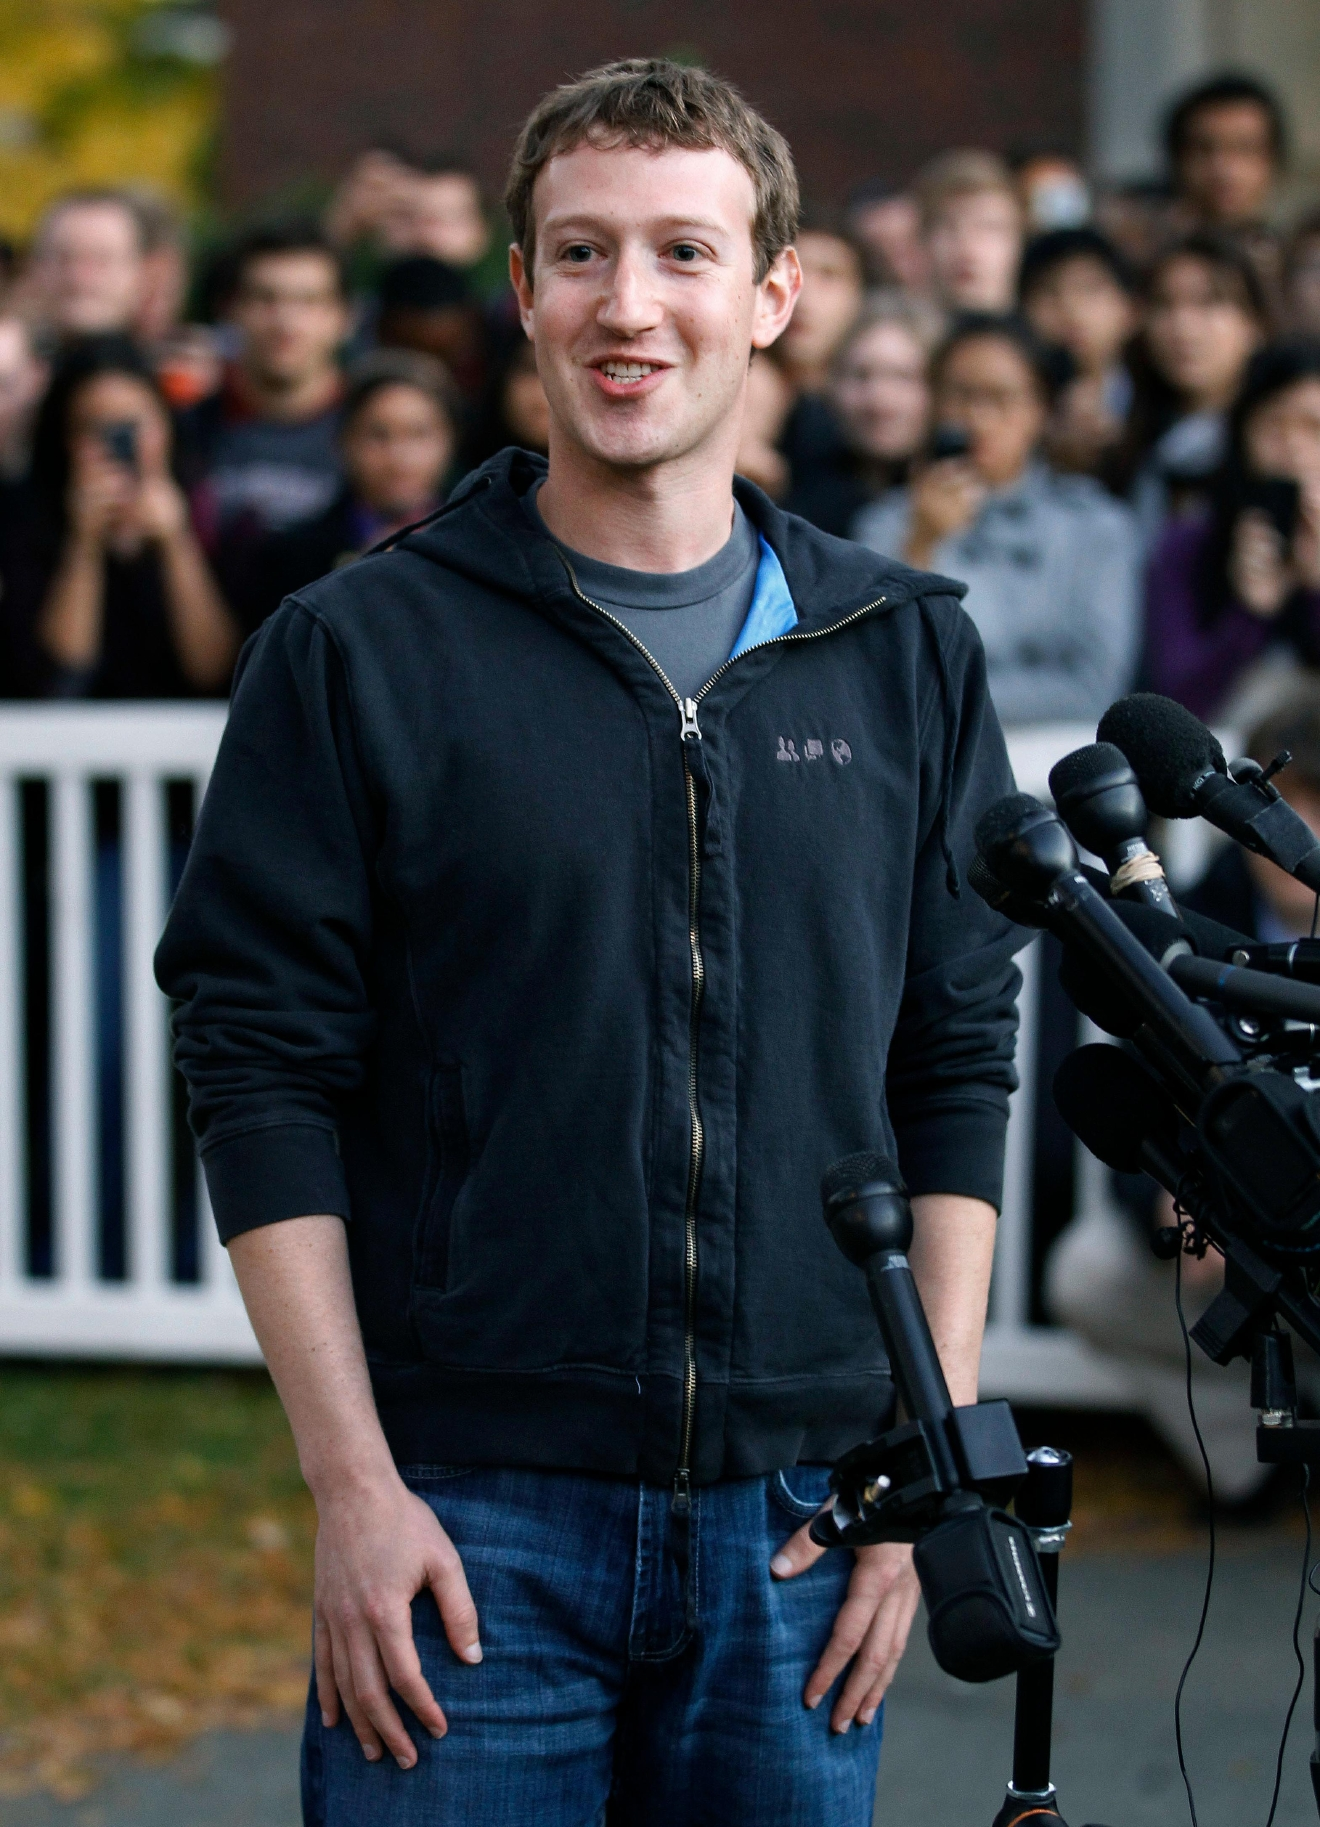 FILE - In this Nov. 7, 2011 file photo, Facebook creator and CEO Mark Zuckerberg takes questions from the media at Harvard University in Cambridge, Mass. Harvard announced Tuesday, March 7, 2017, that Zuckerberg, who went to Harvard as an undergraduate in 2002 but left after his sophomore year to pursue his company, will be the commencement speaker at the school's May 25, 2017 graduation ceremony.(AP Photo/Steven Senne, File)